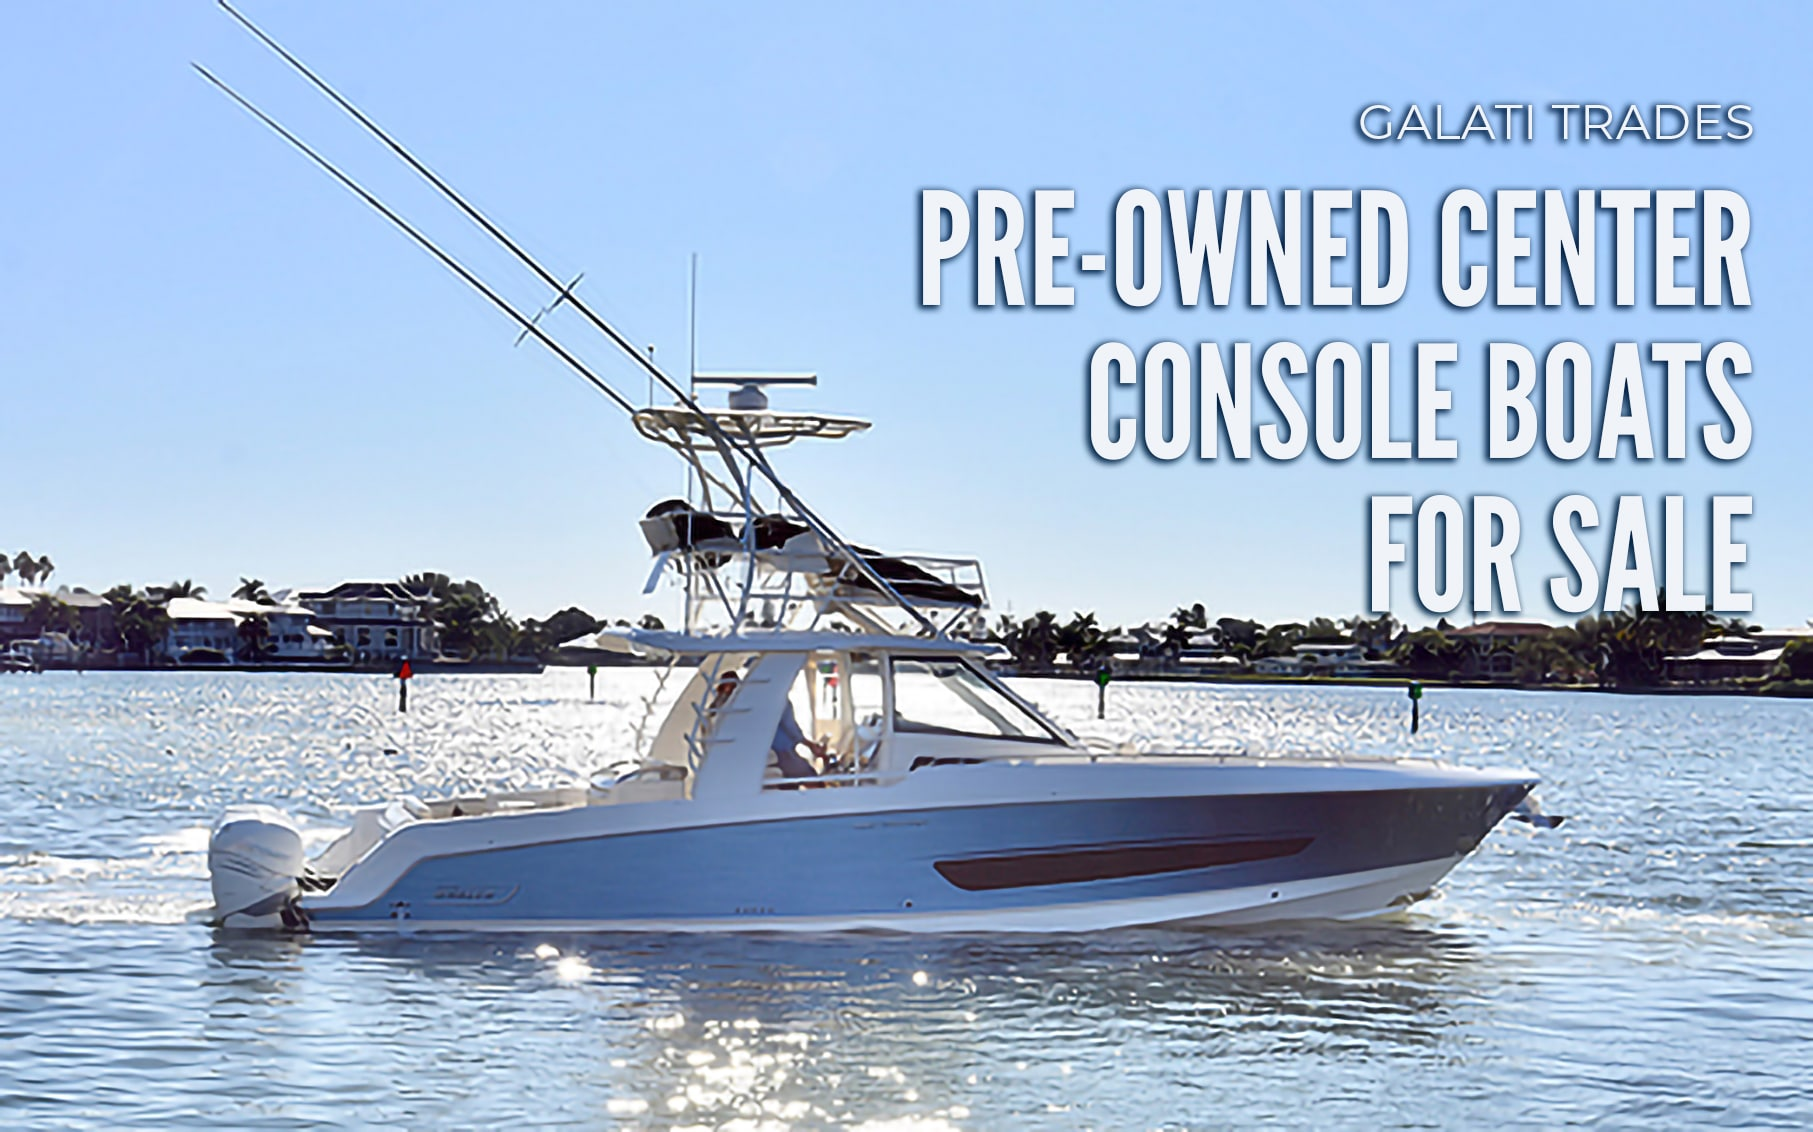 pre-owned center console boats for sale